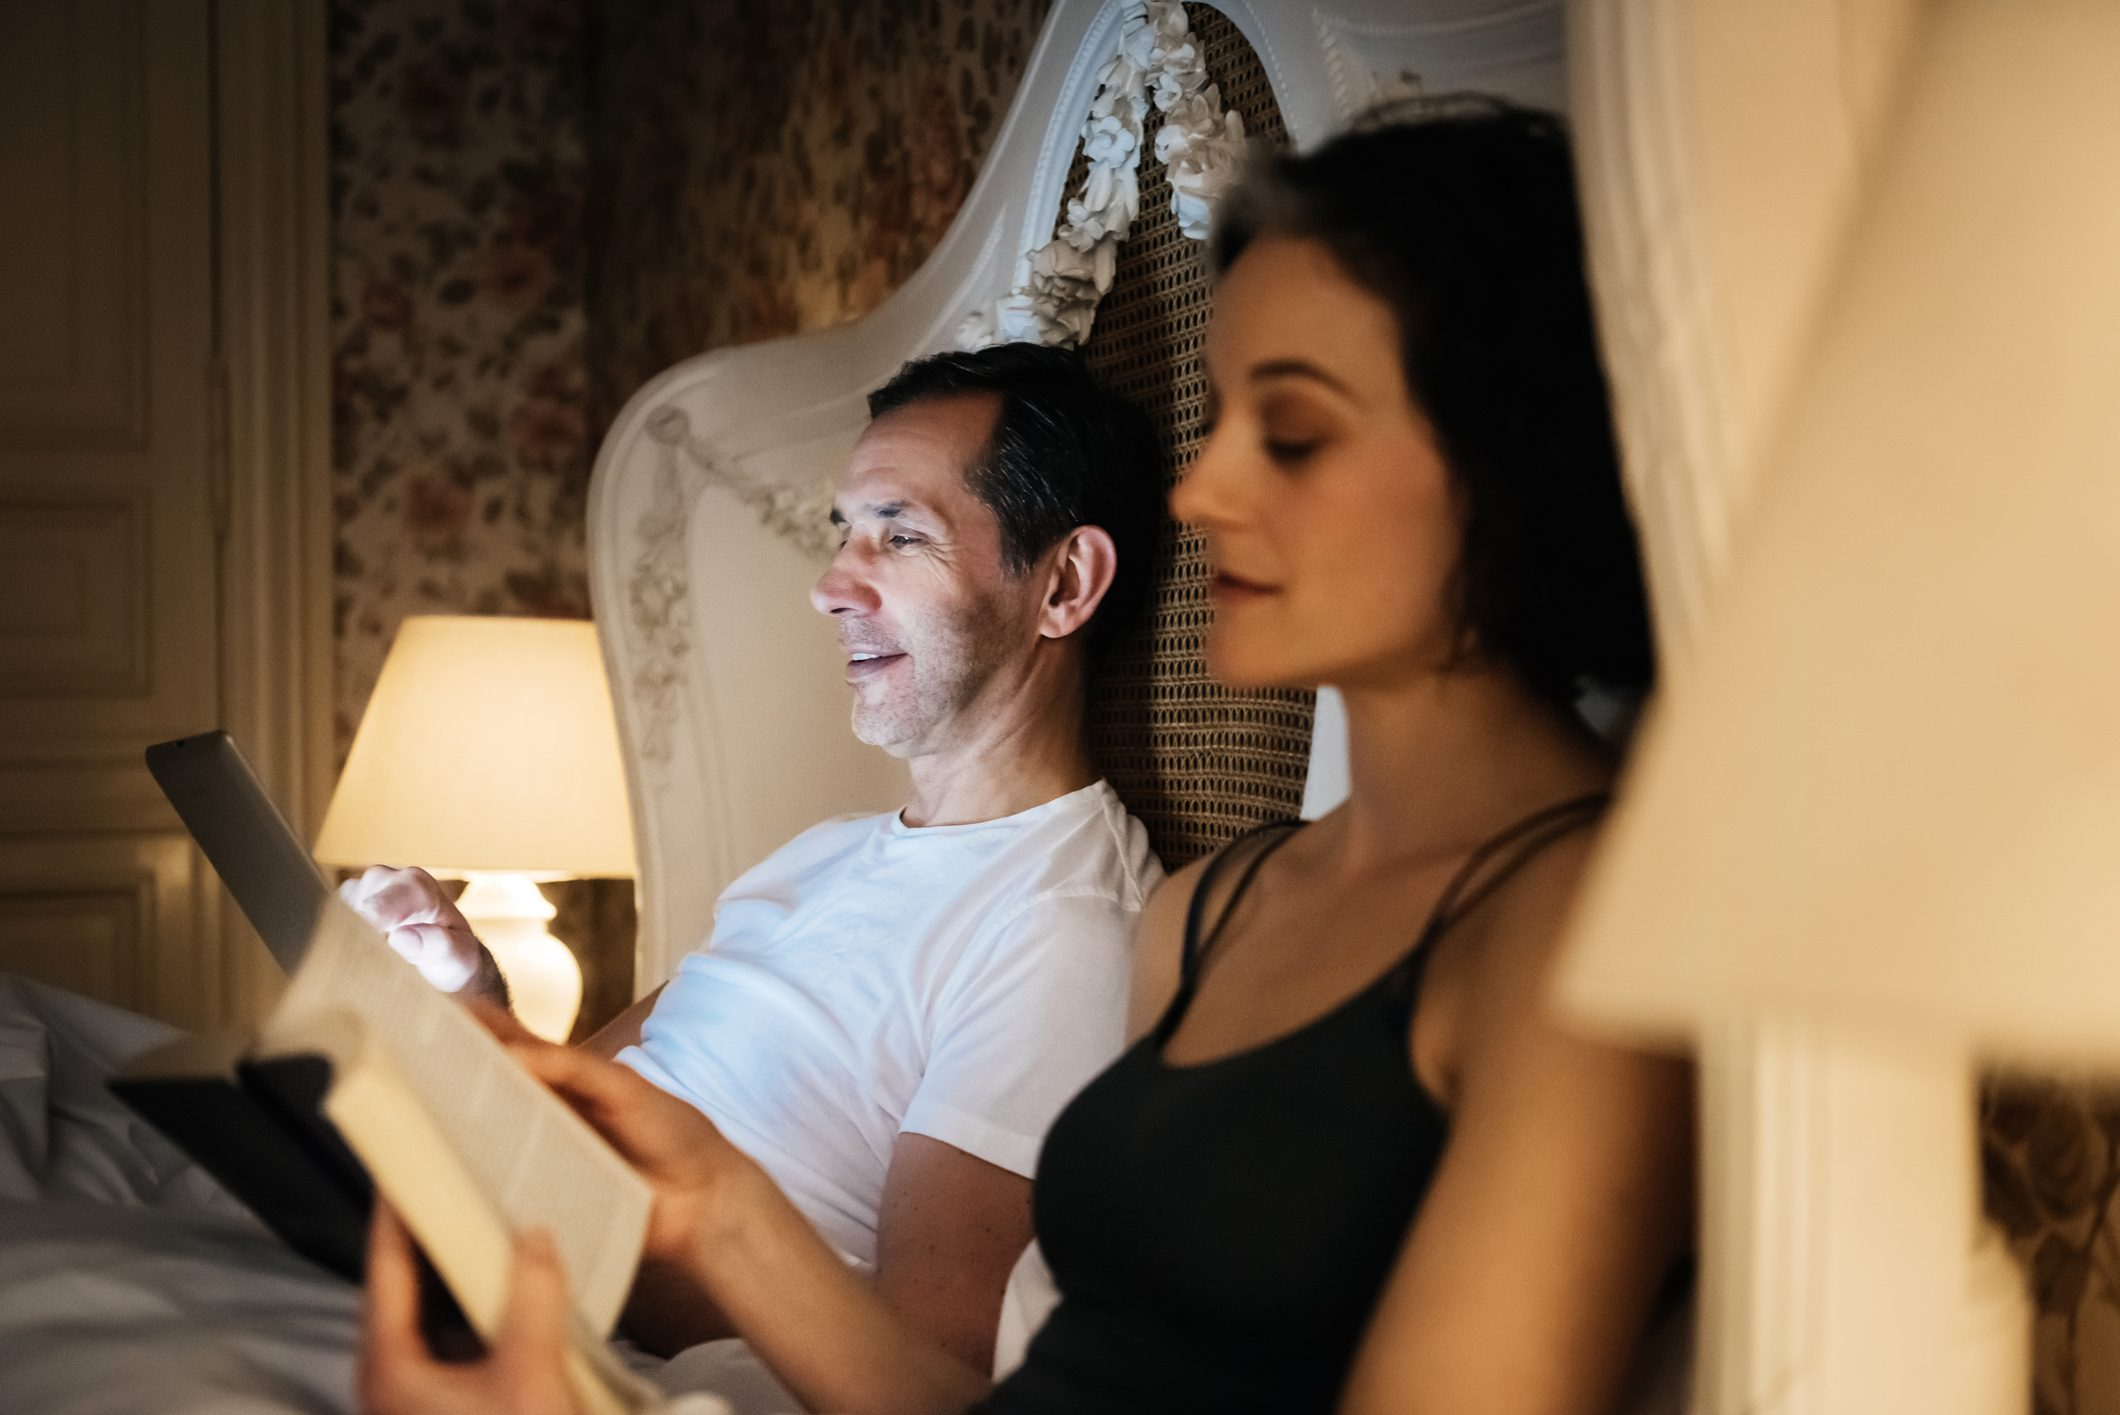 couple reading in bed before going to sleep